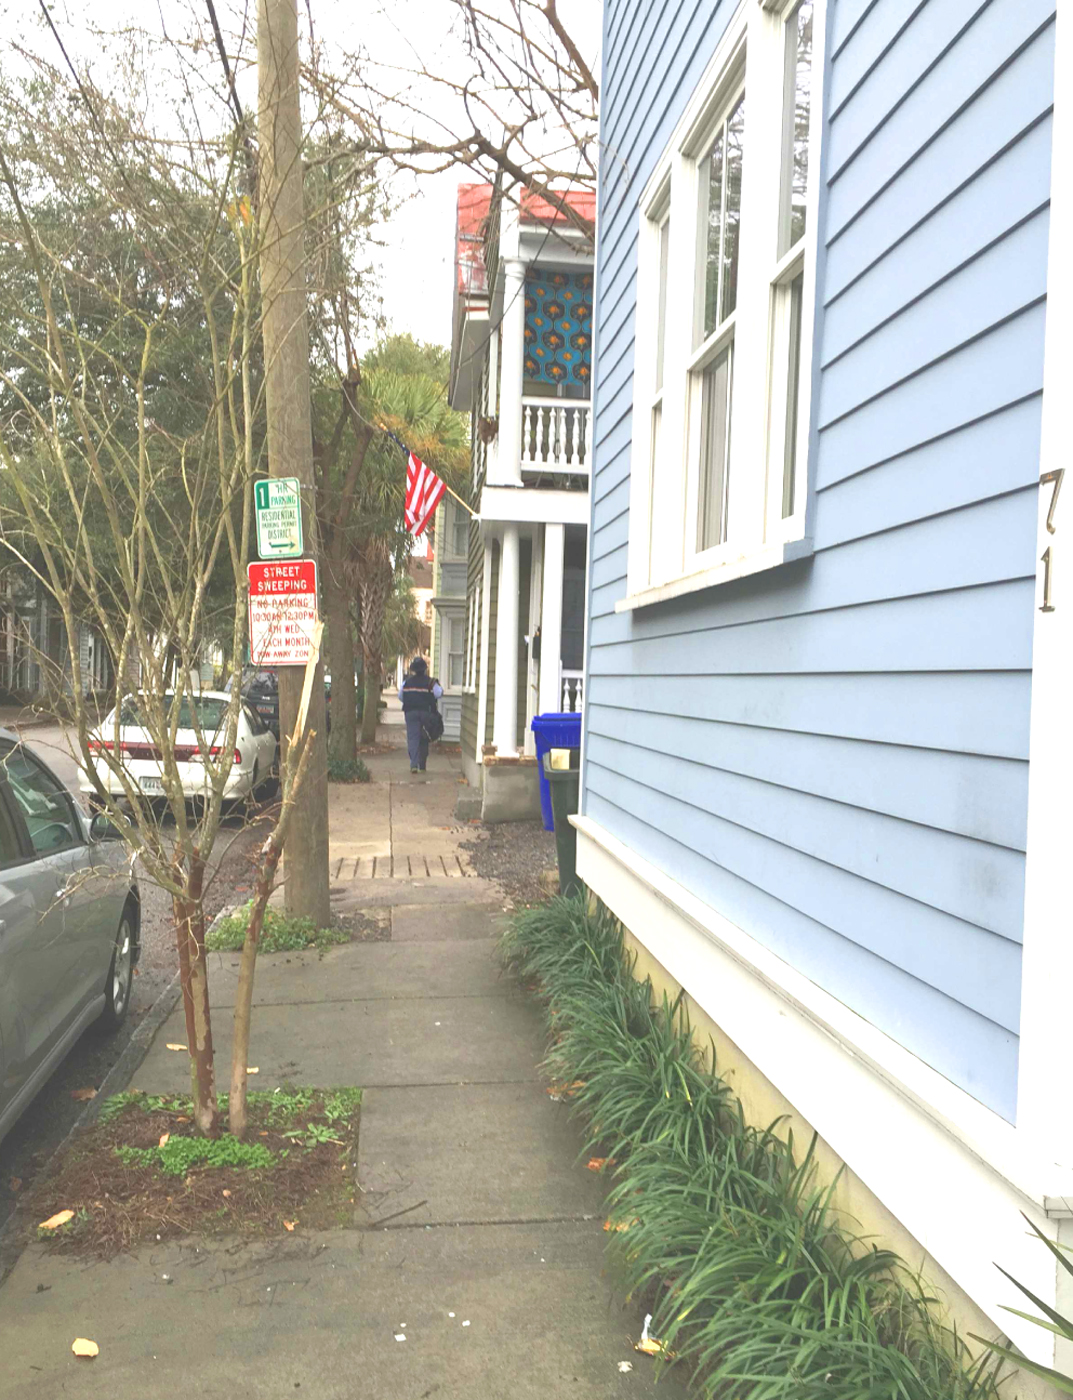 This is what our neighborhood looks like. Buildings right up at the sidewalk. Architects would call this an 'urban condition.'